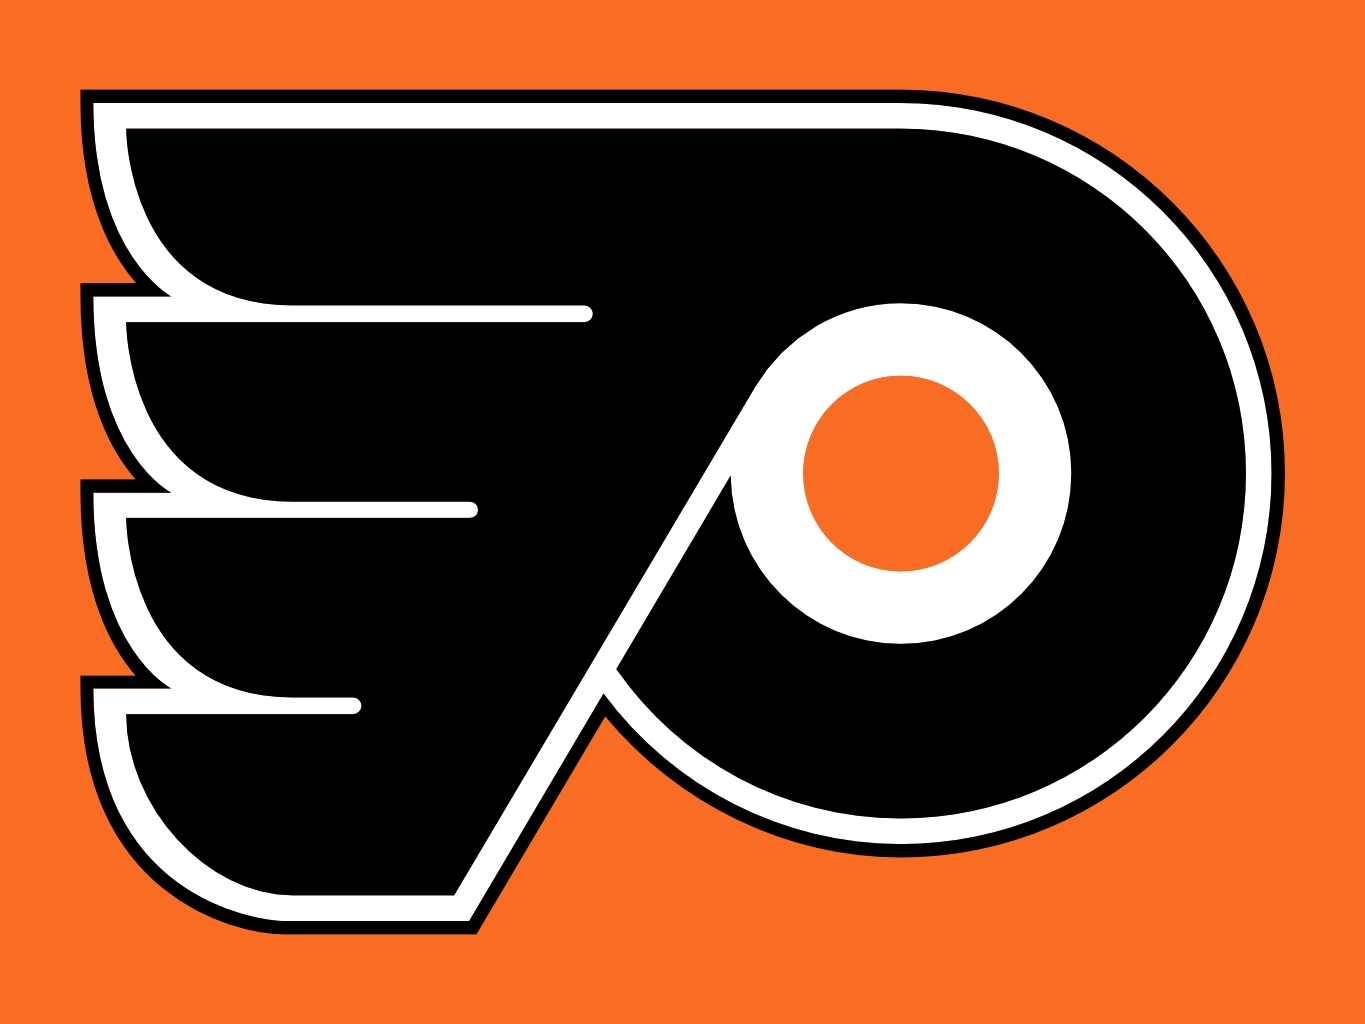 Philadelphia Flyers Pro Sports Teams Wiki